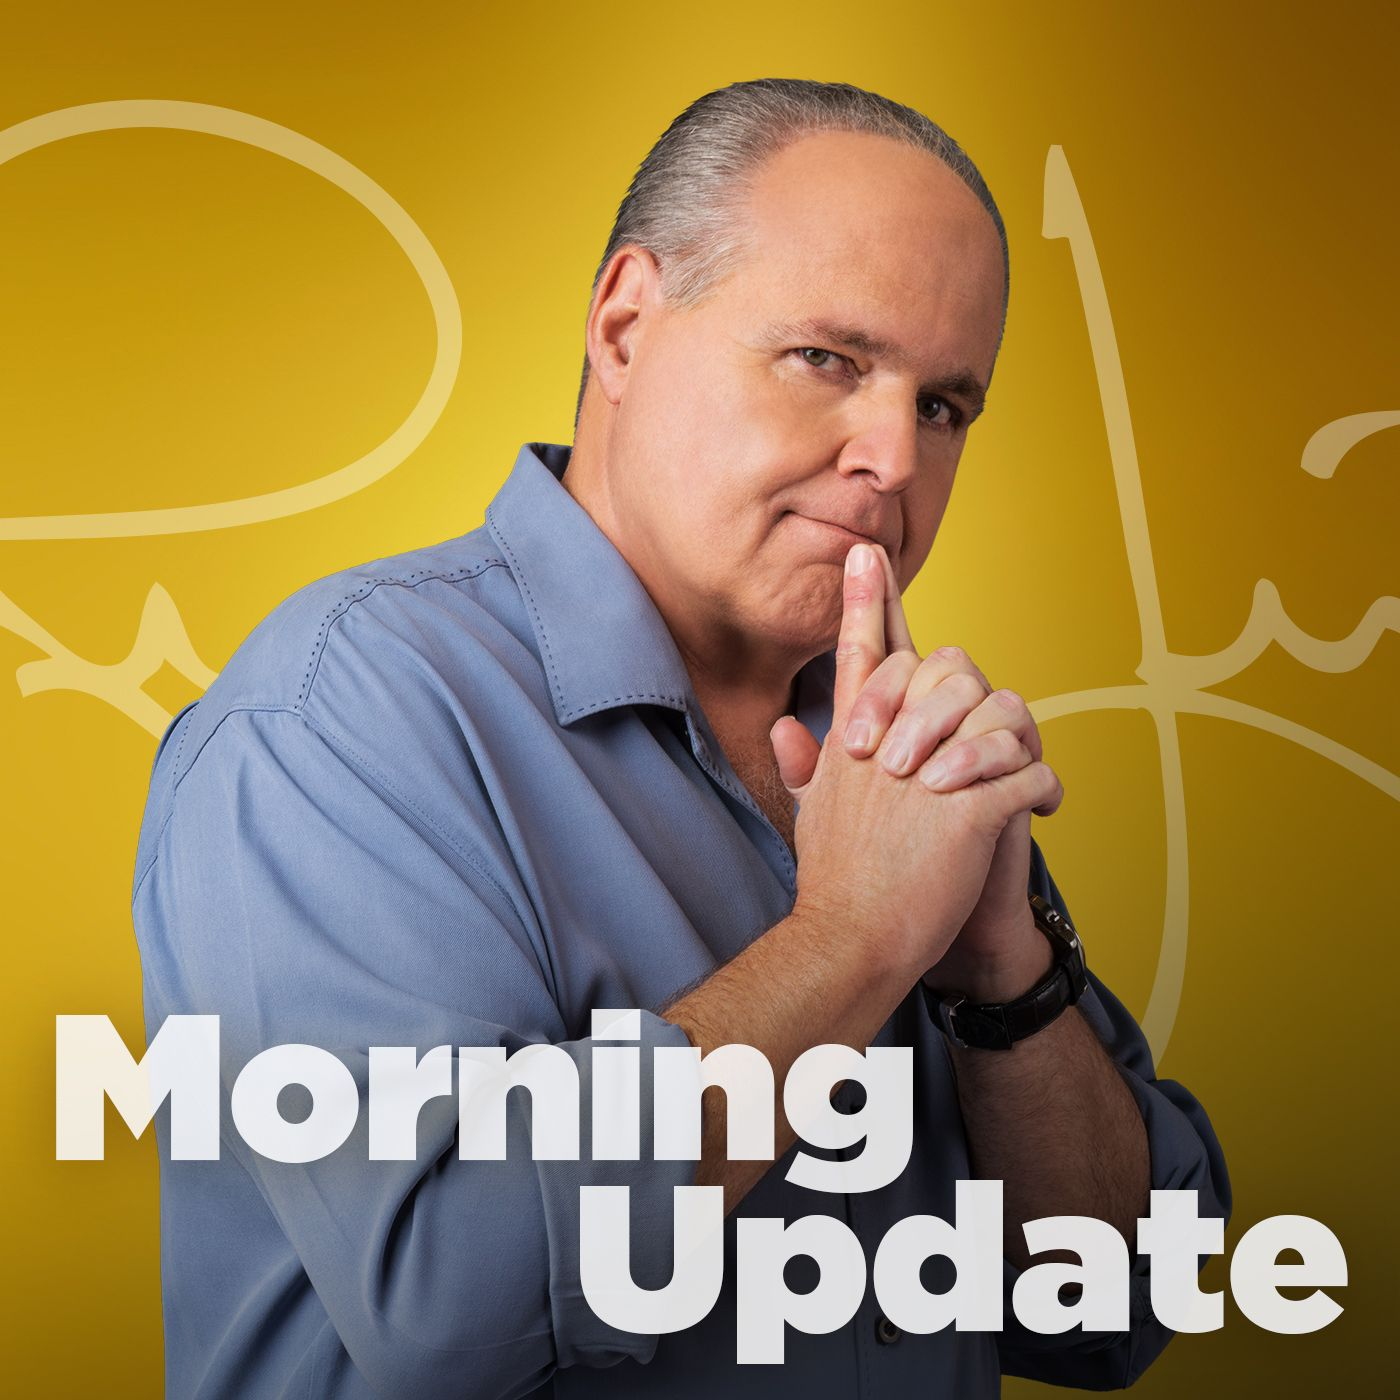 Rush Limbaugh Jun 12, 2020